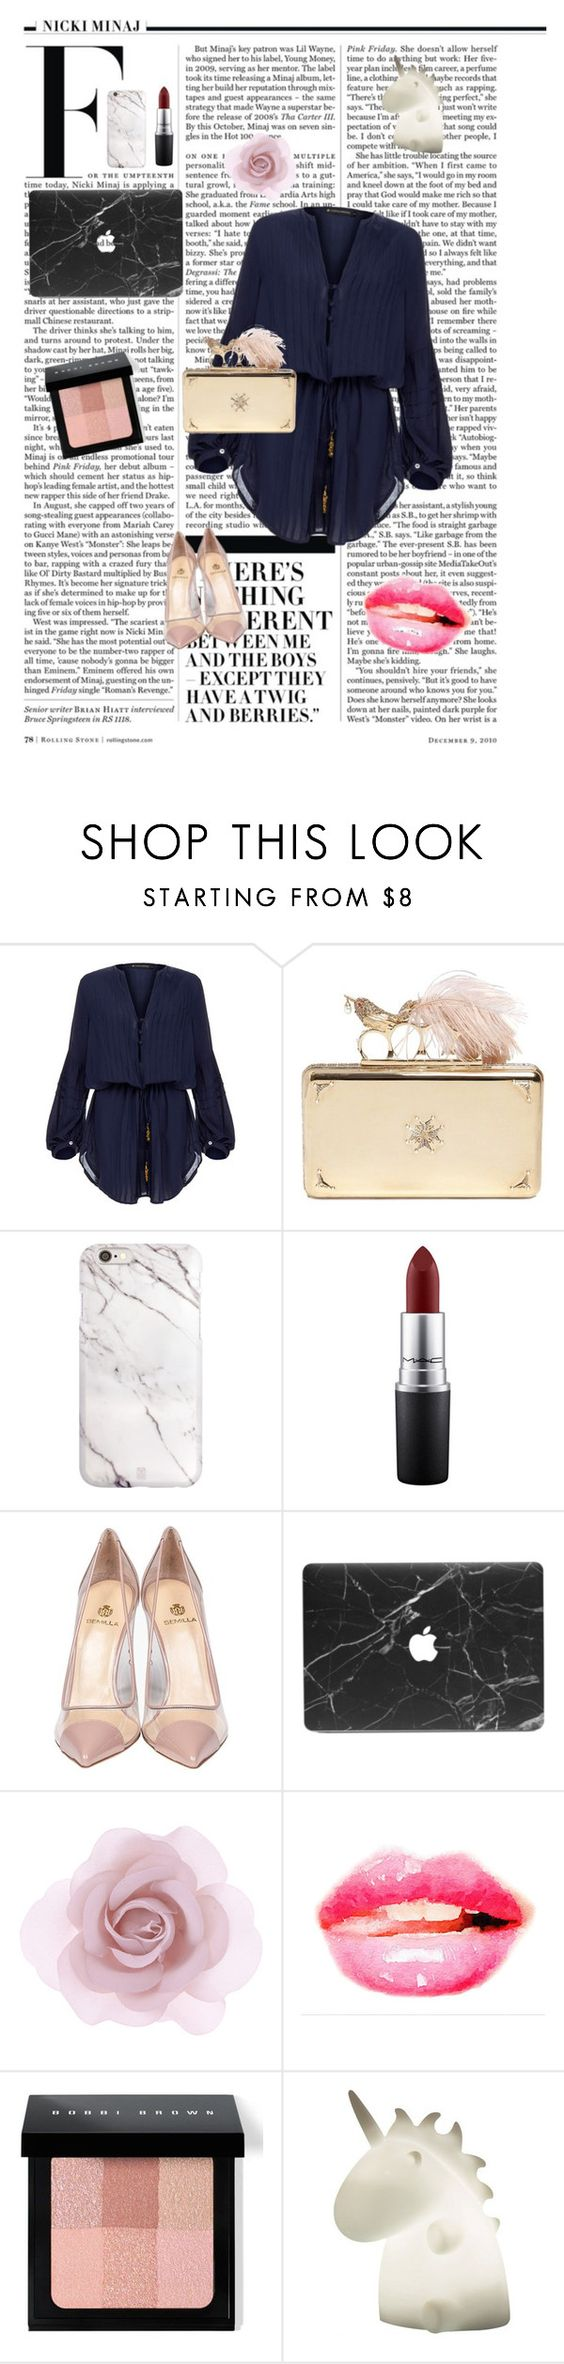 """Untitled #194"" by modeaddict-334-341 ❤ liked on Polyvore featuring Nicki Minaj, ViX, Alexander McQueen, MAC Cosmetics, Semilla, Accessorize, Bobbi Brown Cosmetics, women's clothing, women's fashion and women"